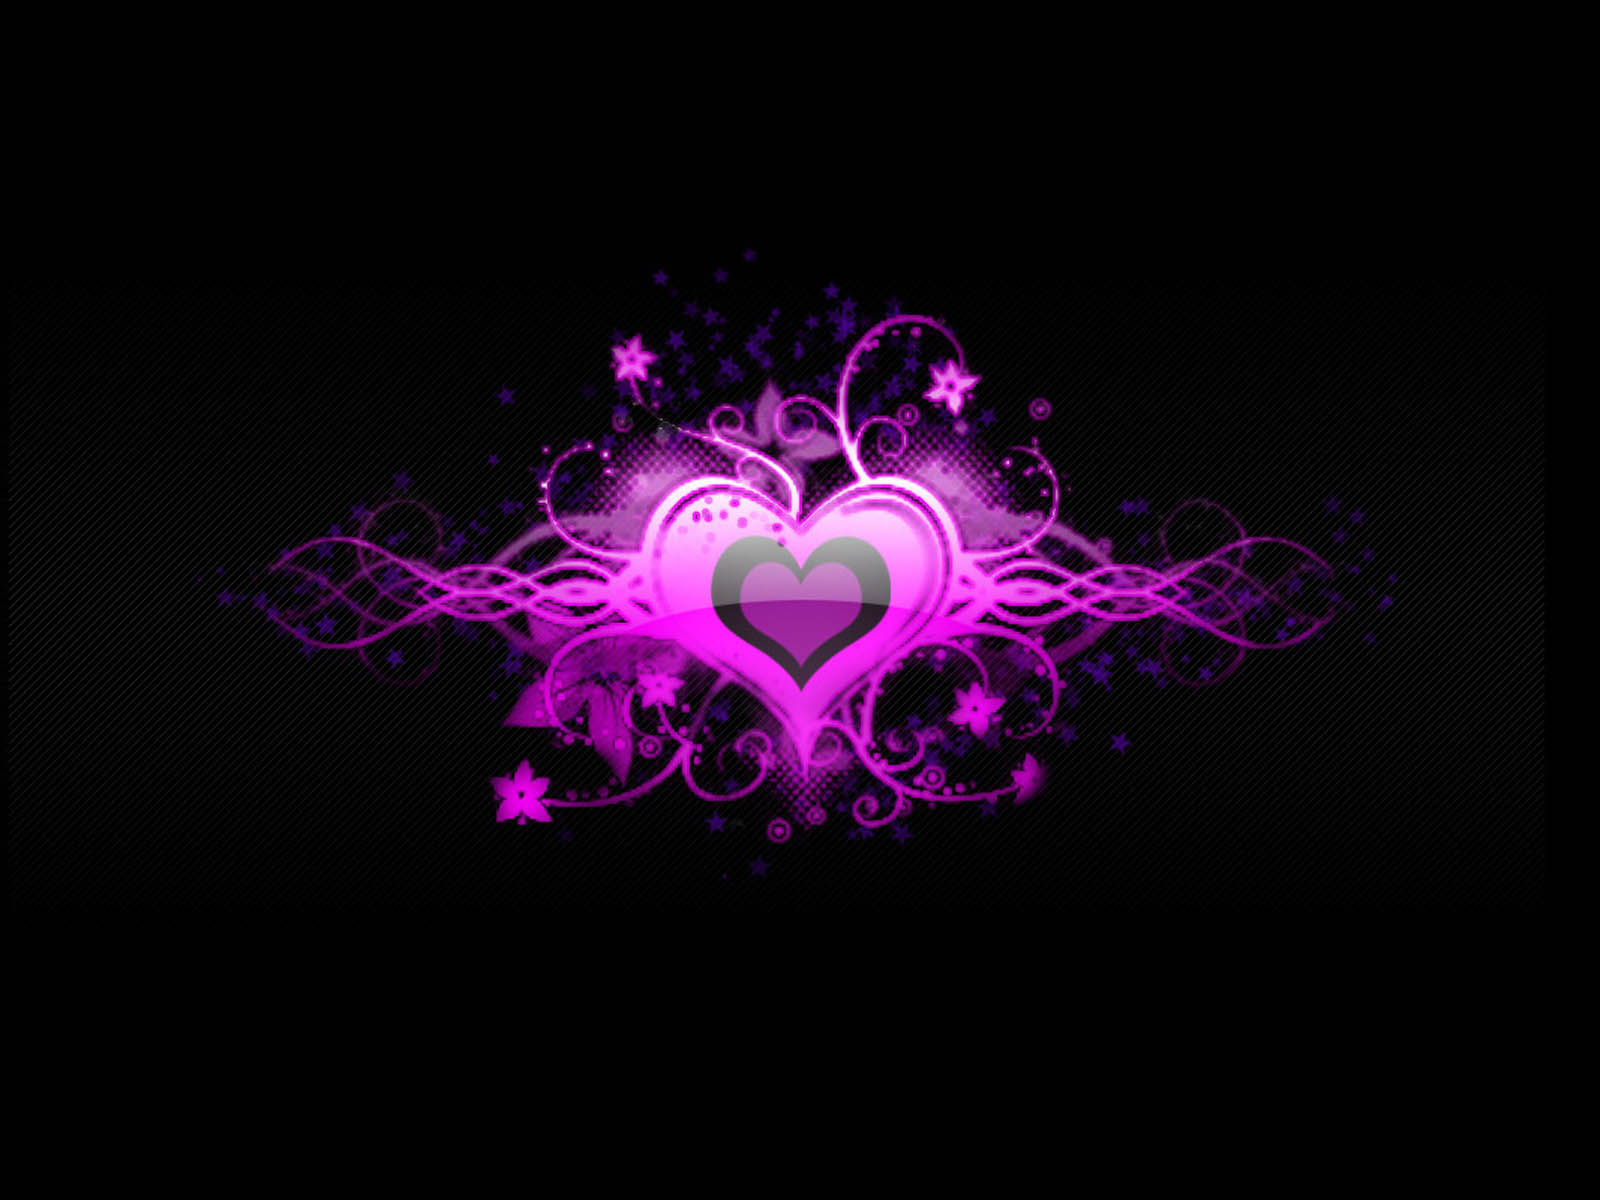 Love Wallpapers Blogspot : wallpapers: Love Heart Wallpapers